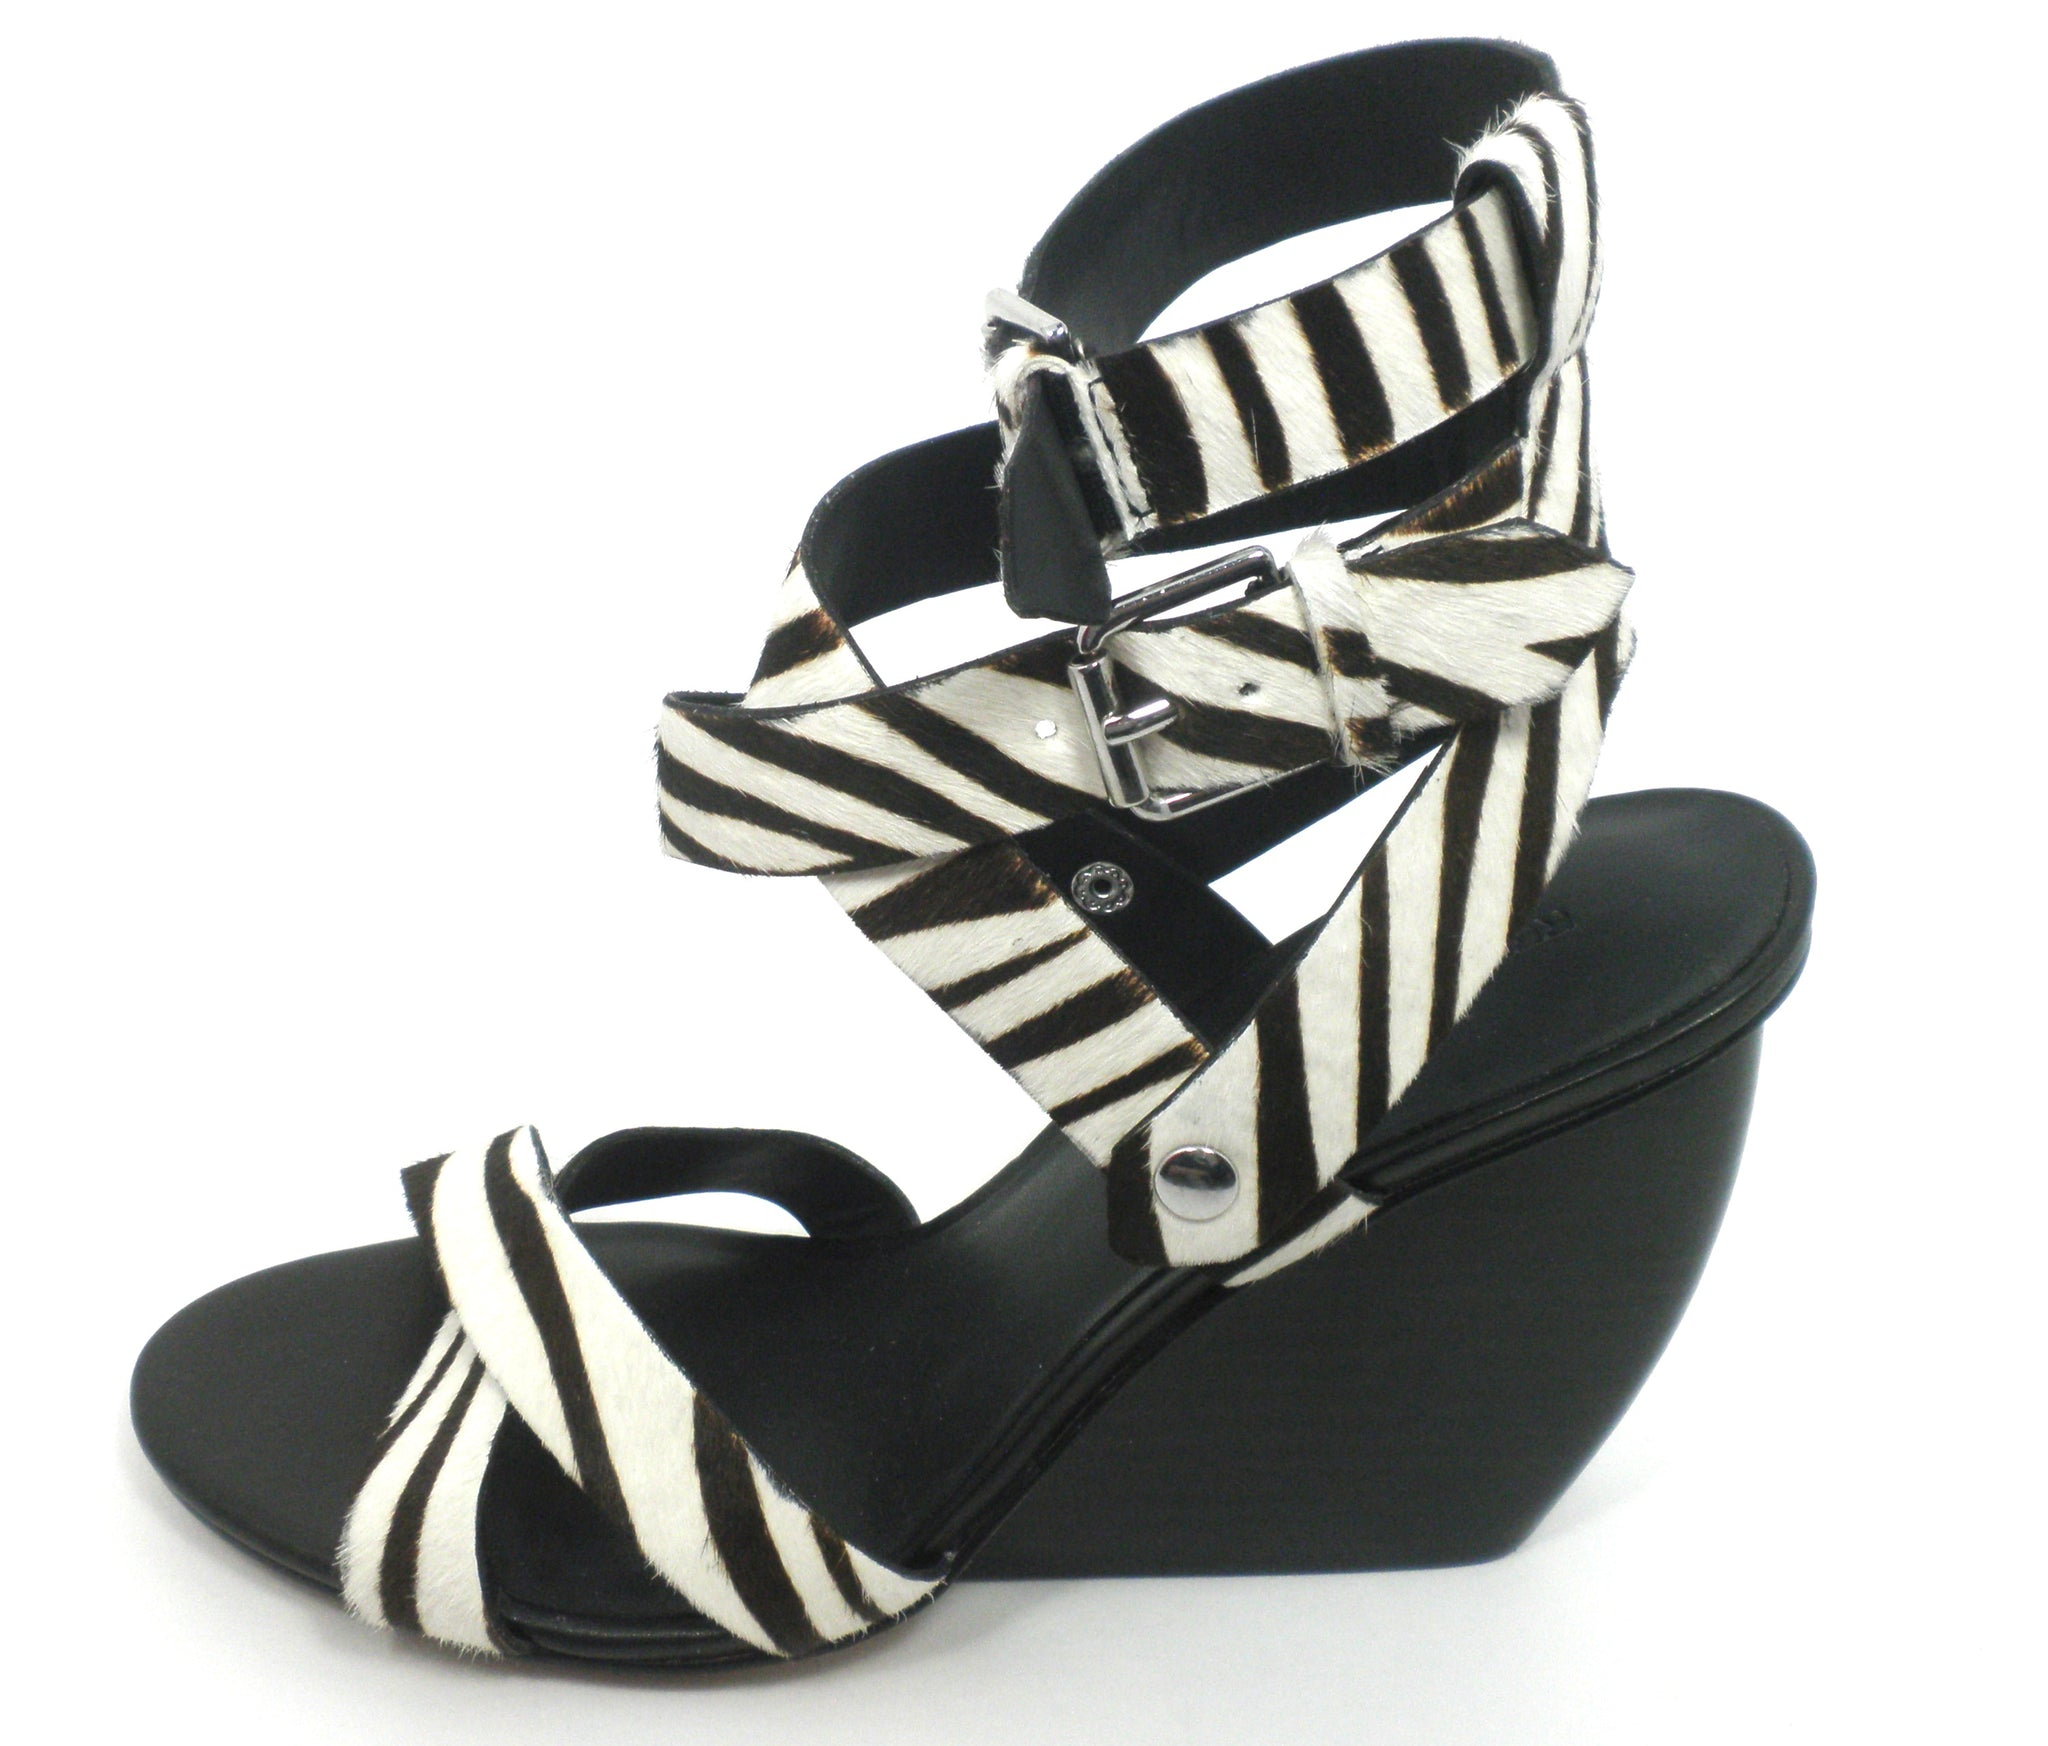 Rebecca Minkoff Black And White Zebra Wedge - Size 7 - Donated From The Designer